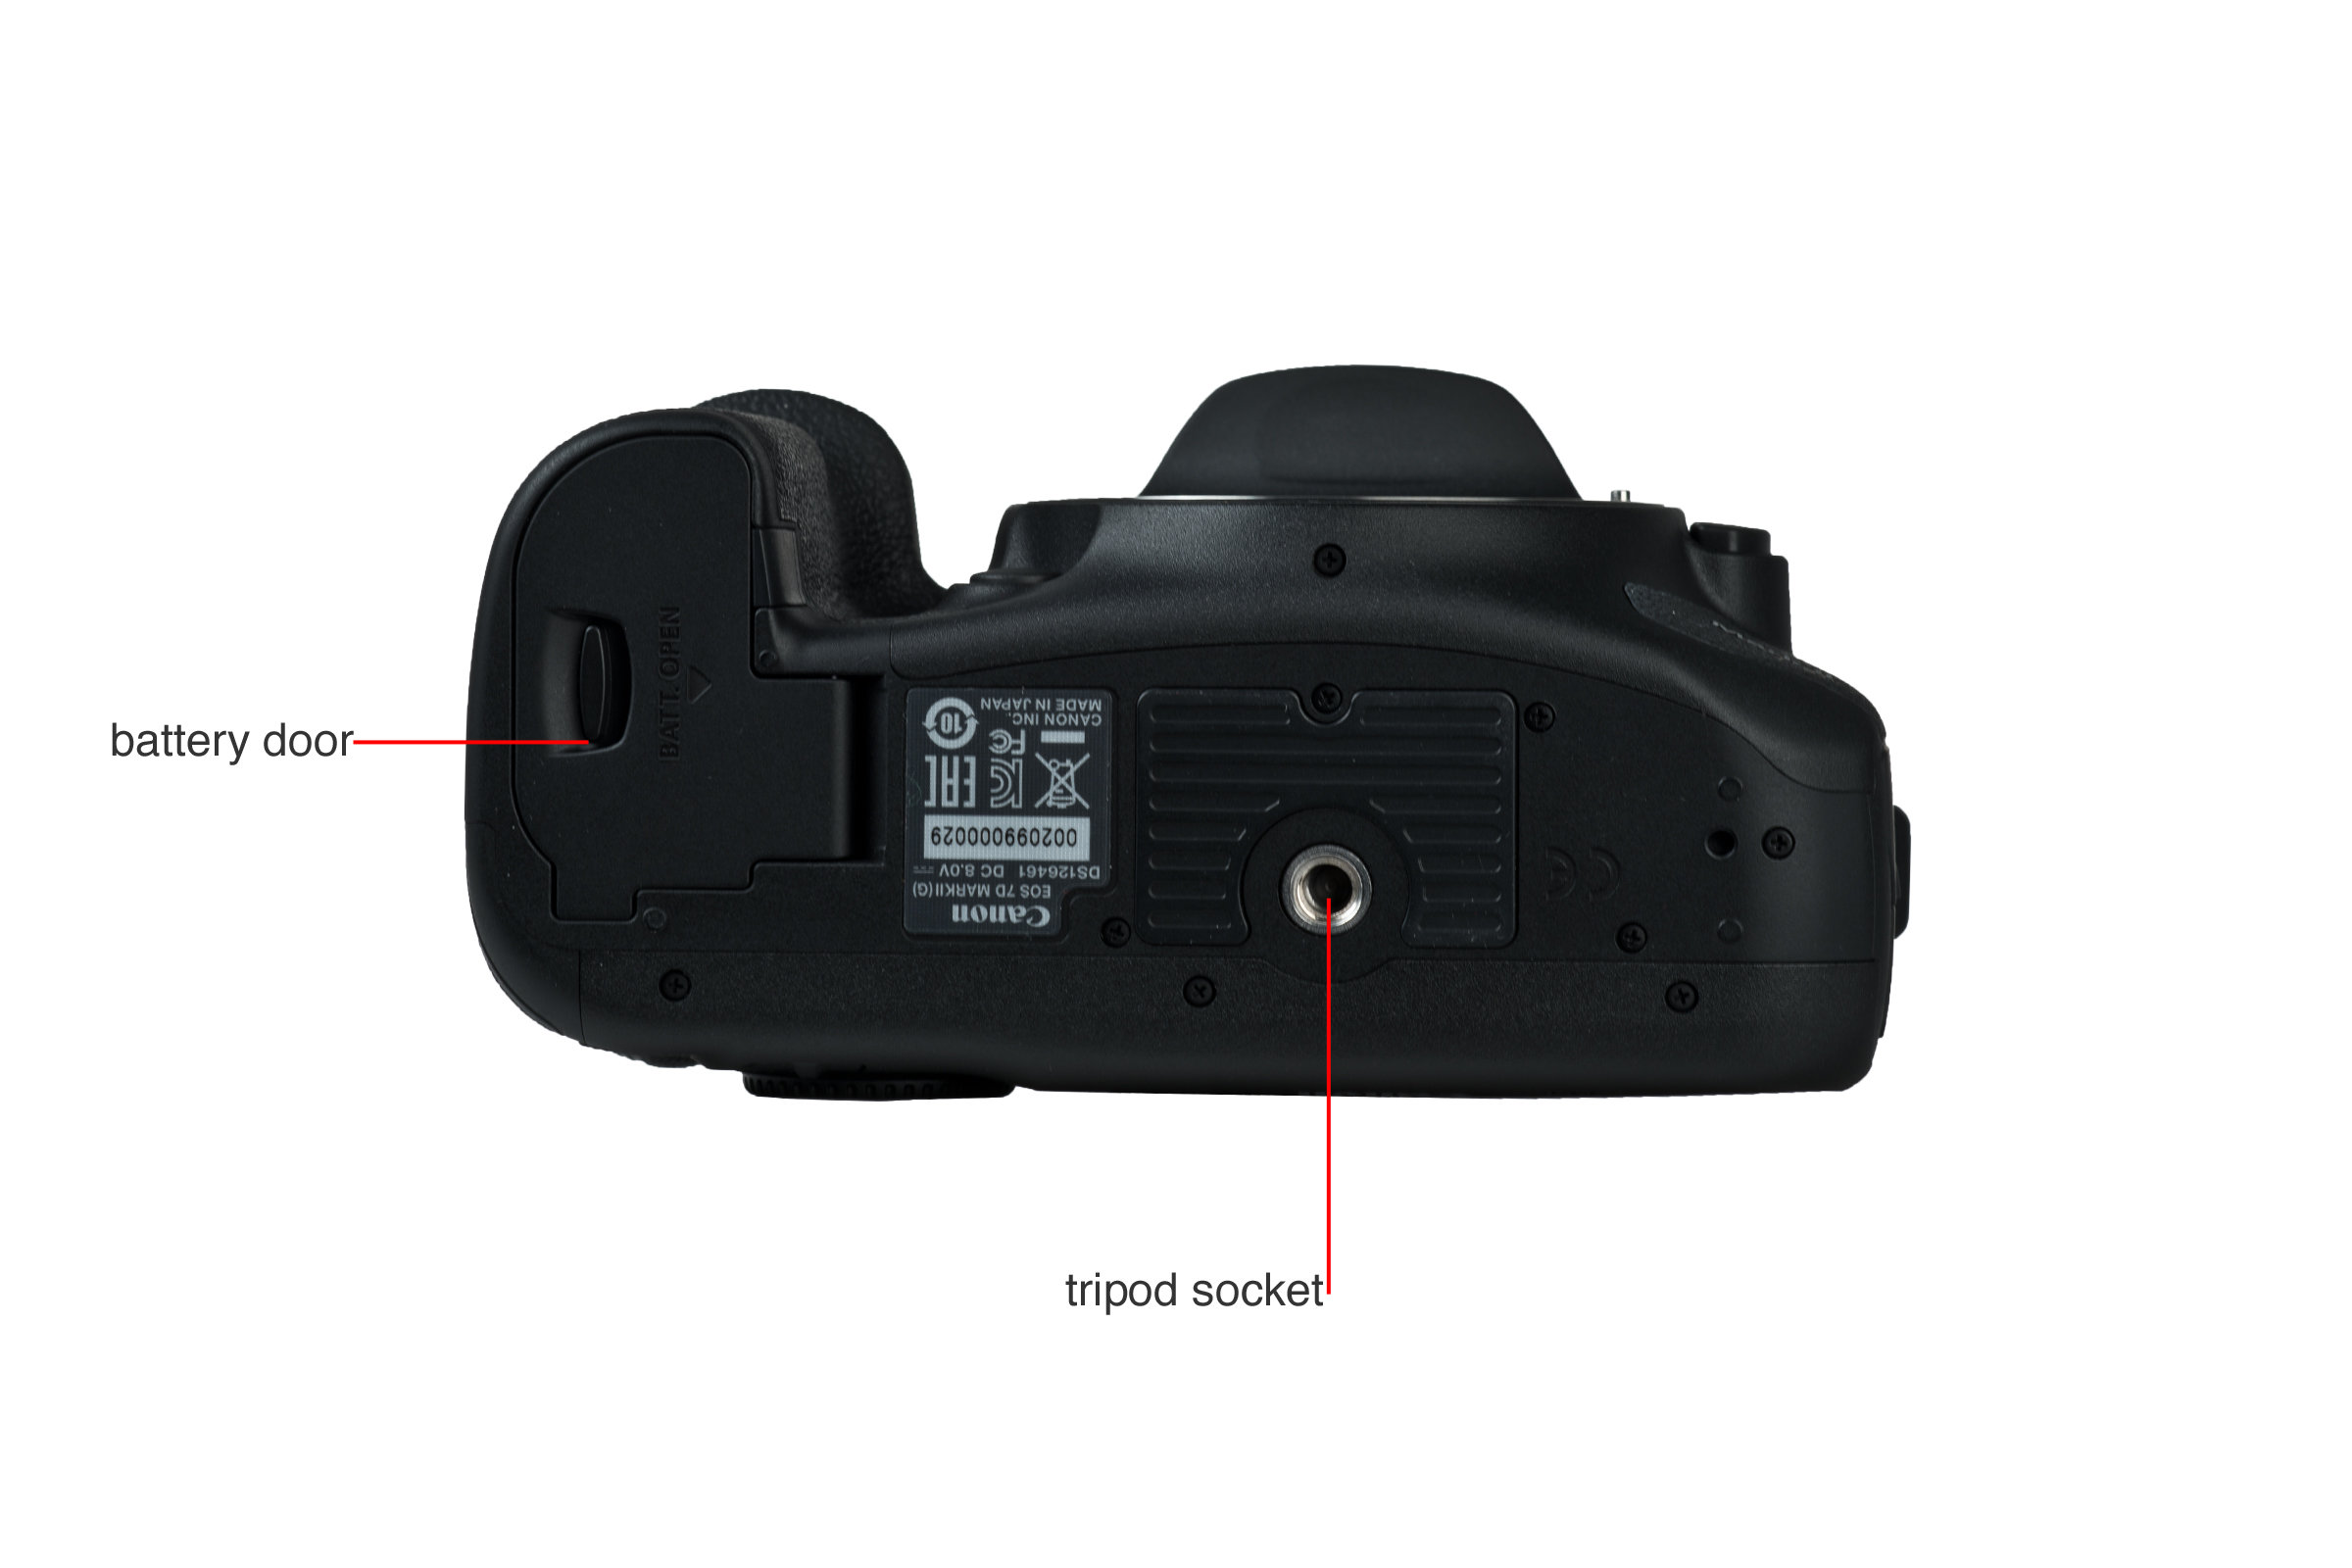 A picture illustrating the buttons and controls of the Canon 7D MkII's bottom.